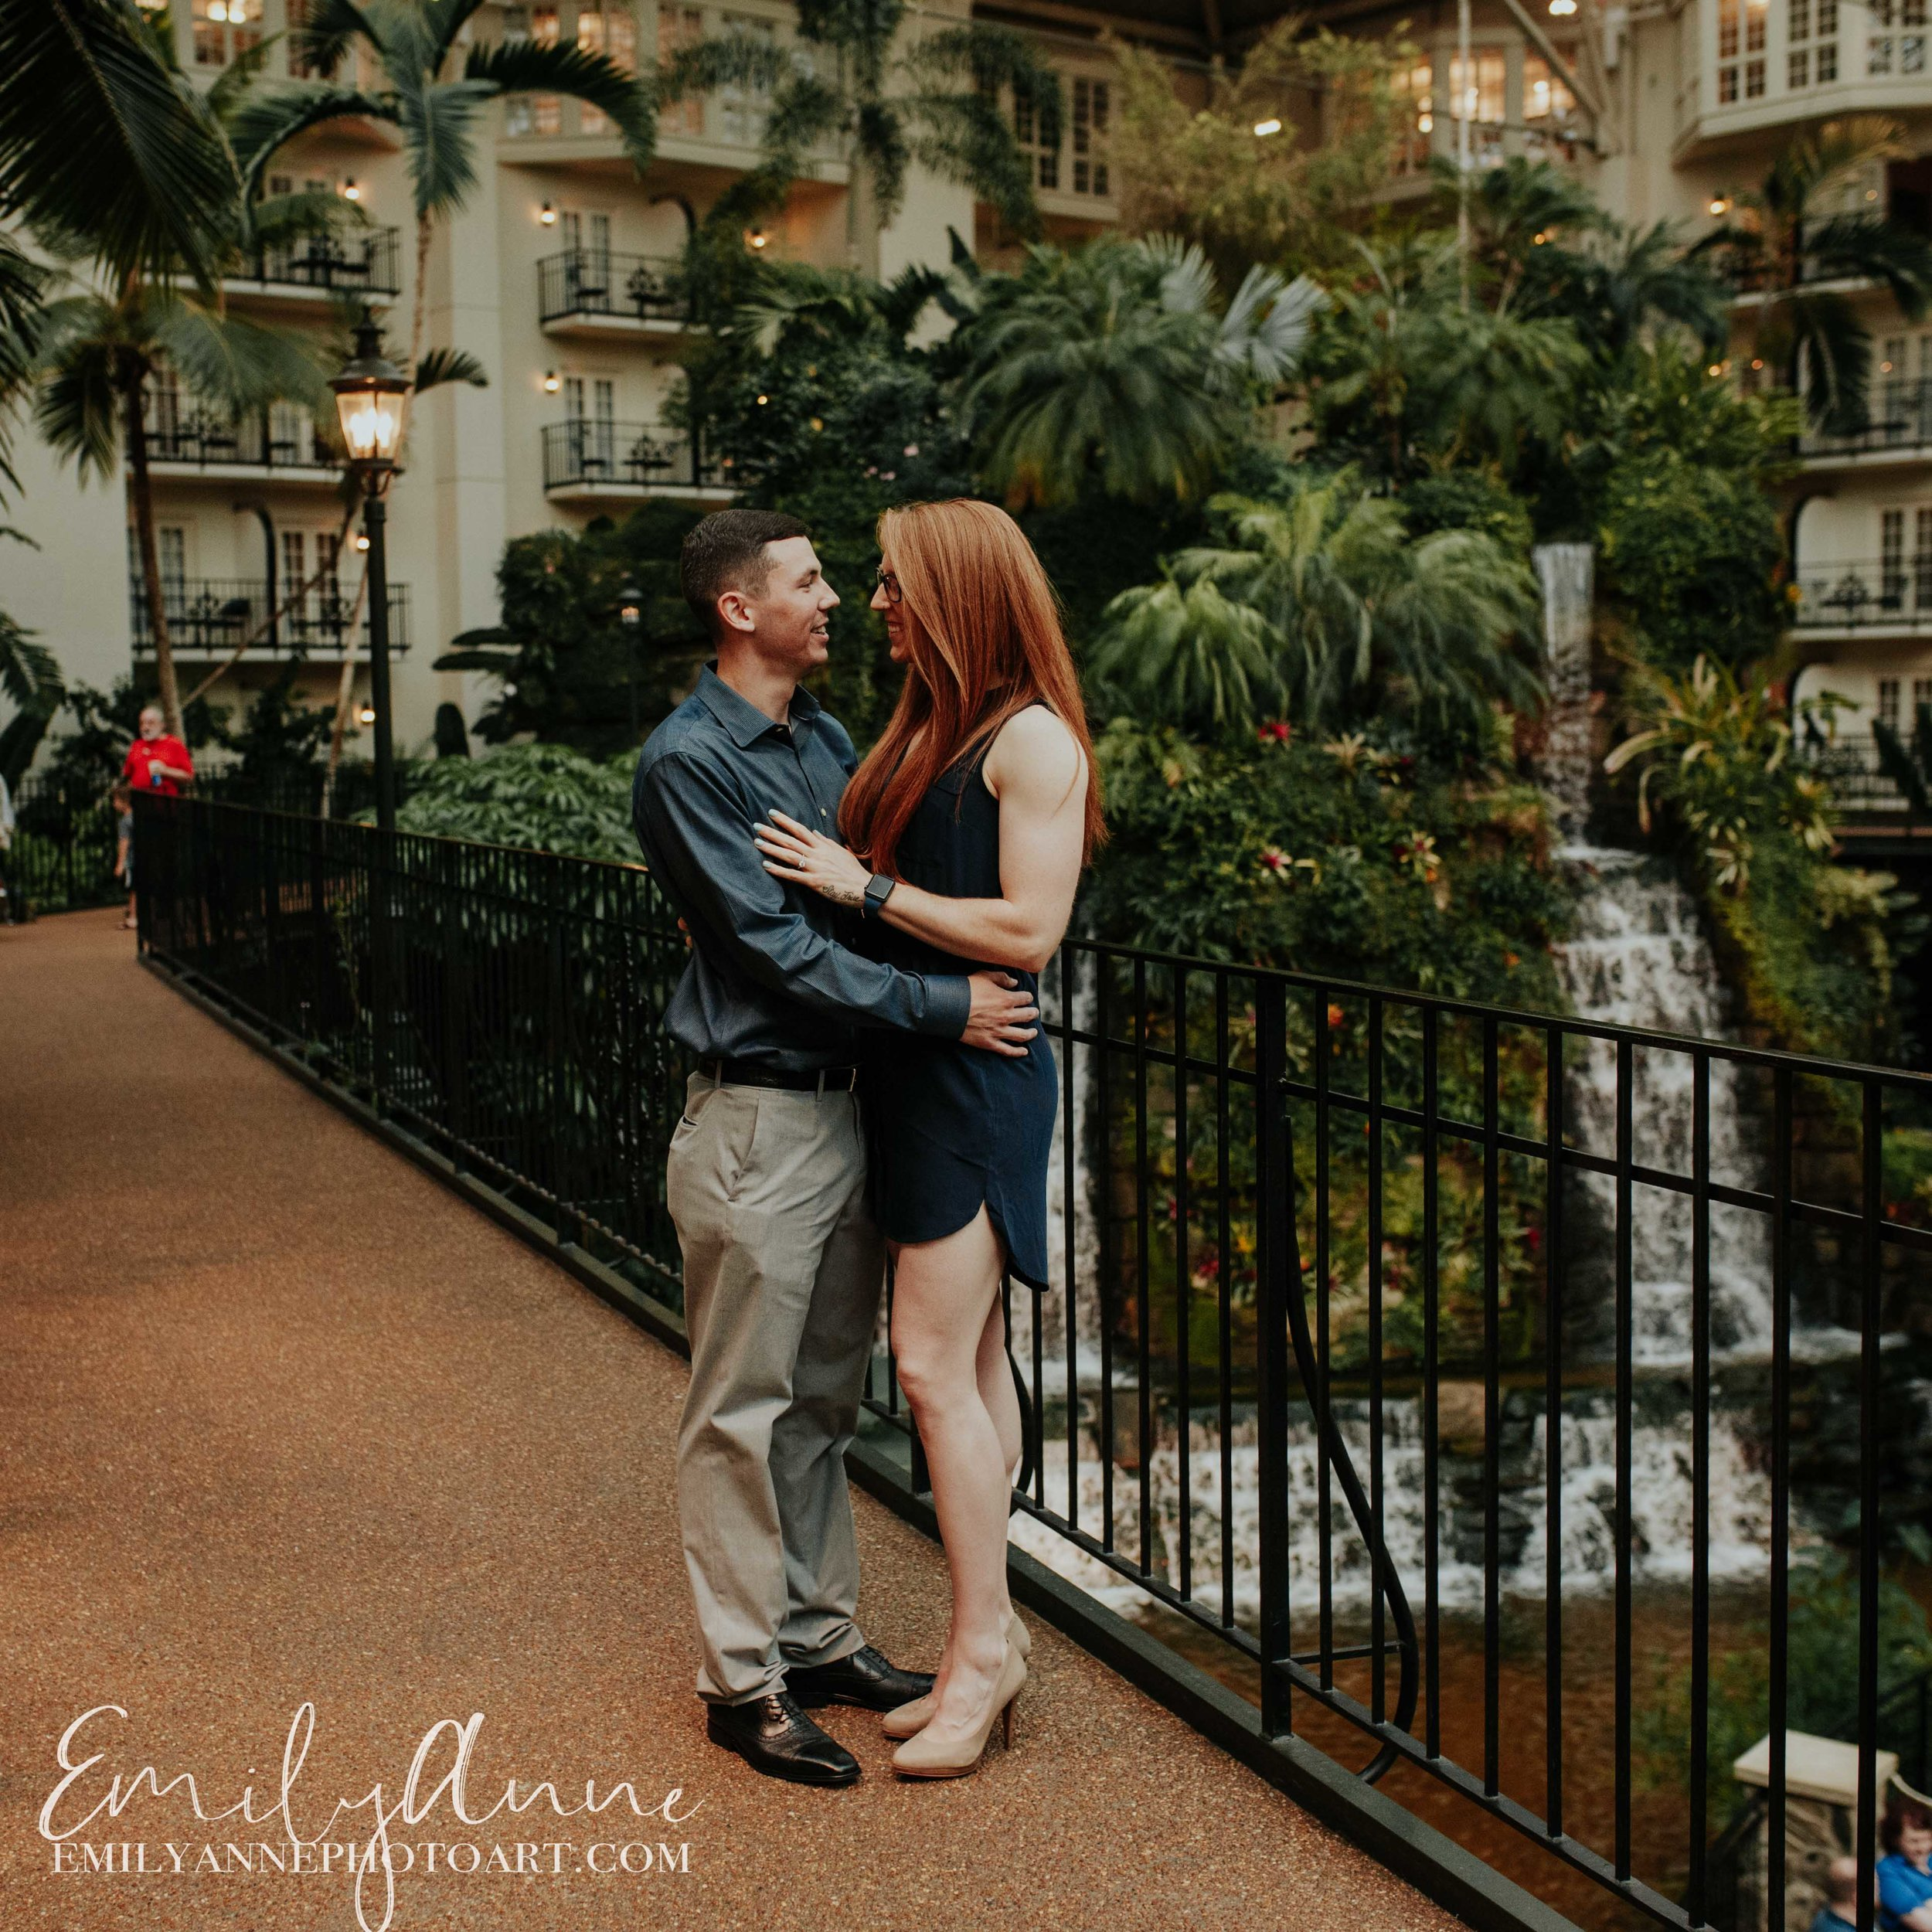 dreamy engagement photoshoot opryland hotel nashville wedding travel elopment photographer emily anne photo art